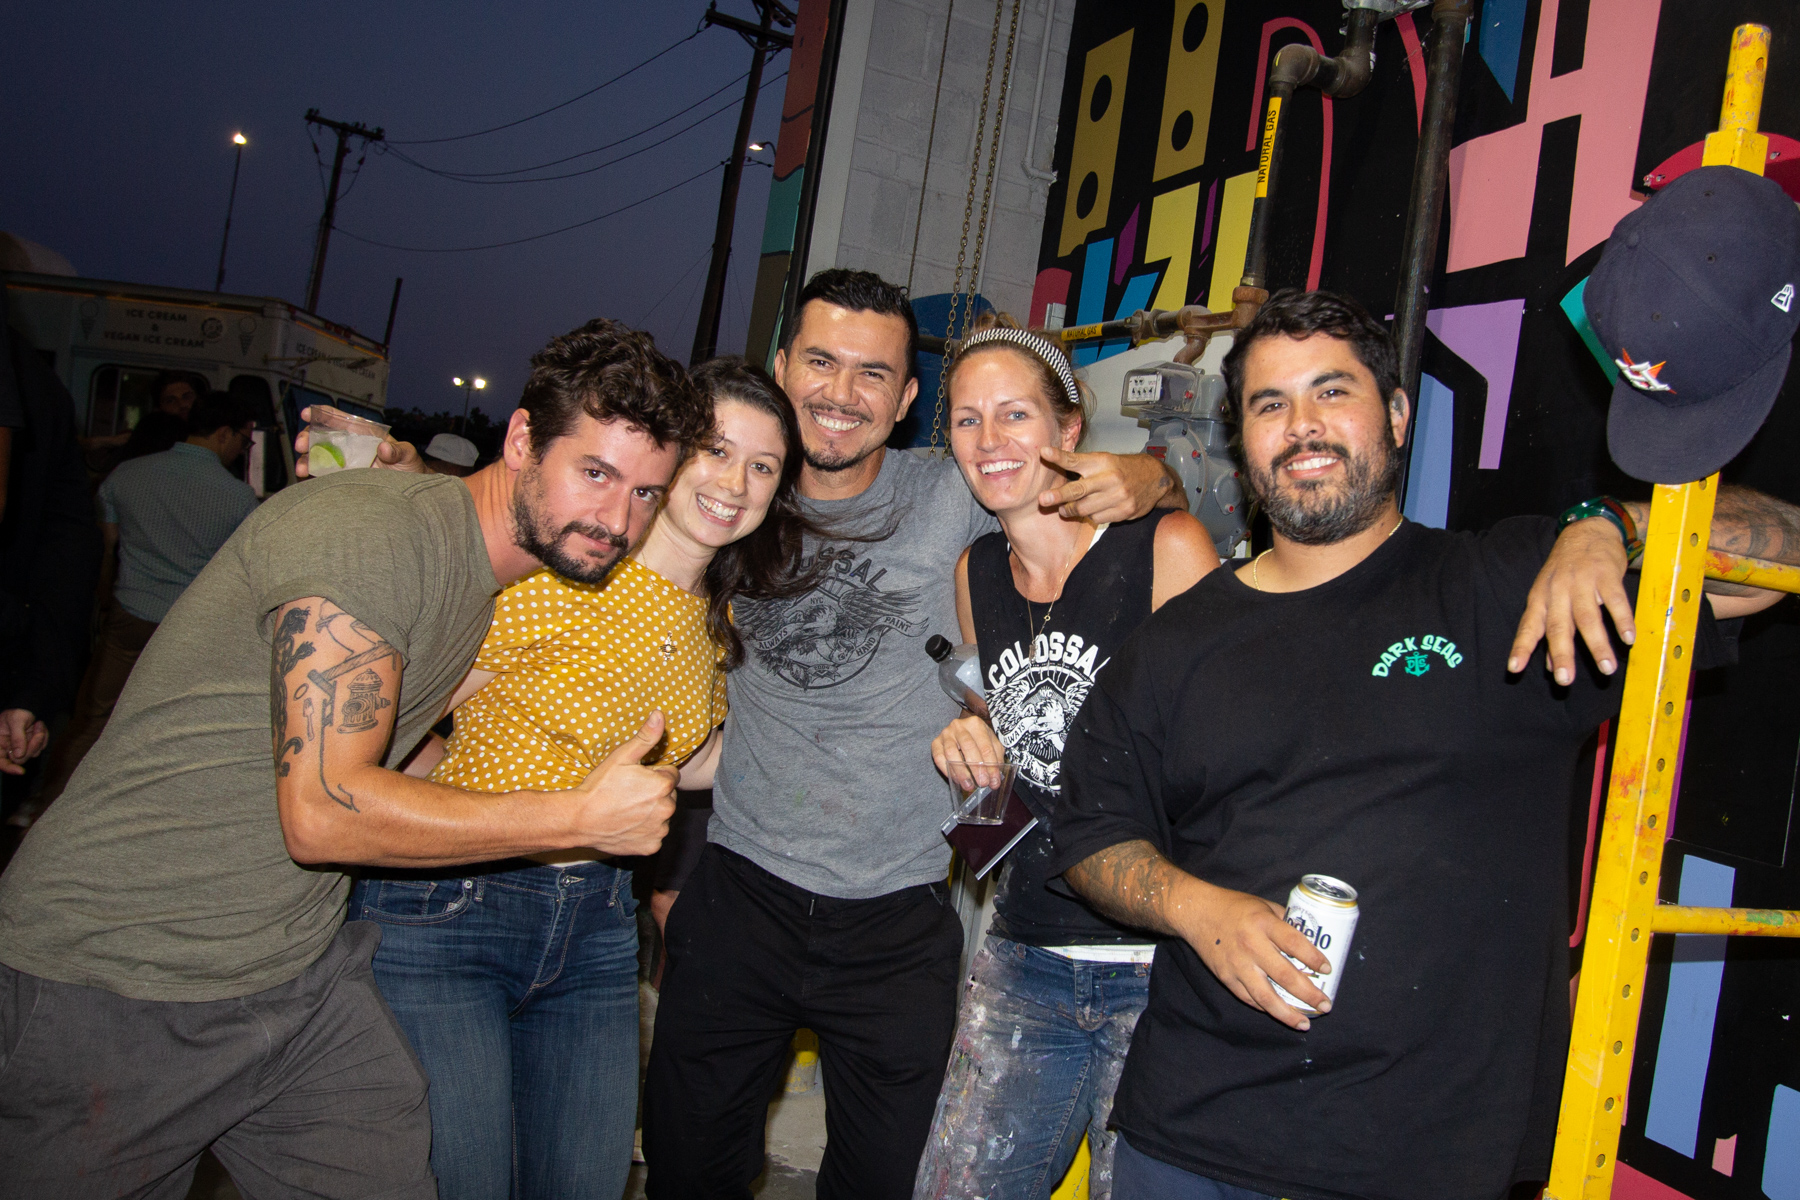 Photos from the Colossal Client BBQ at our shop in East Williamsburg